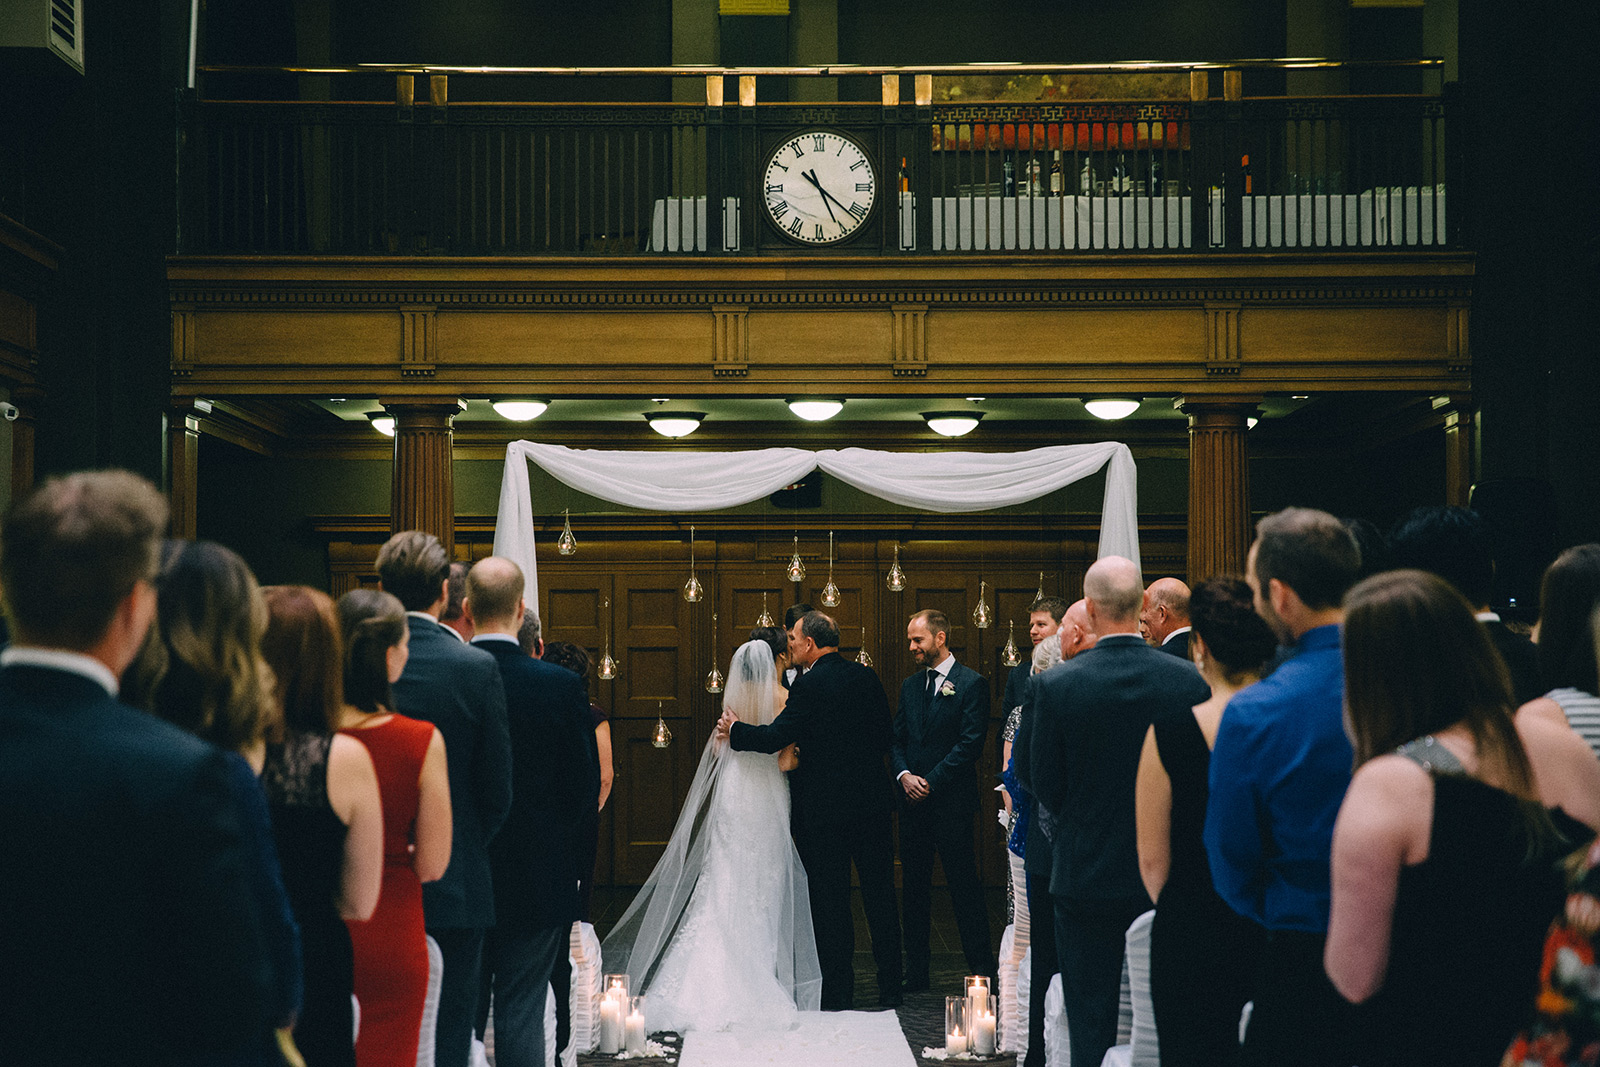 One-King-West-Toronto-wedding-photography_Sam-Wong-of-Visual-Cravings_KnR-26